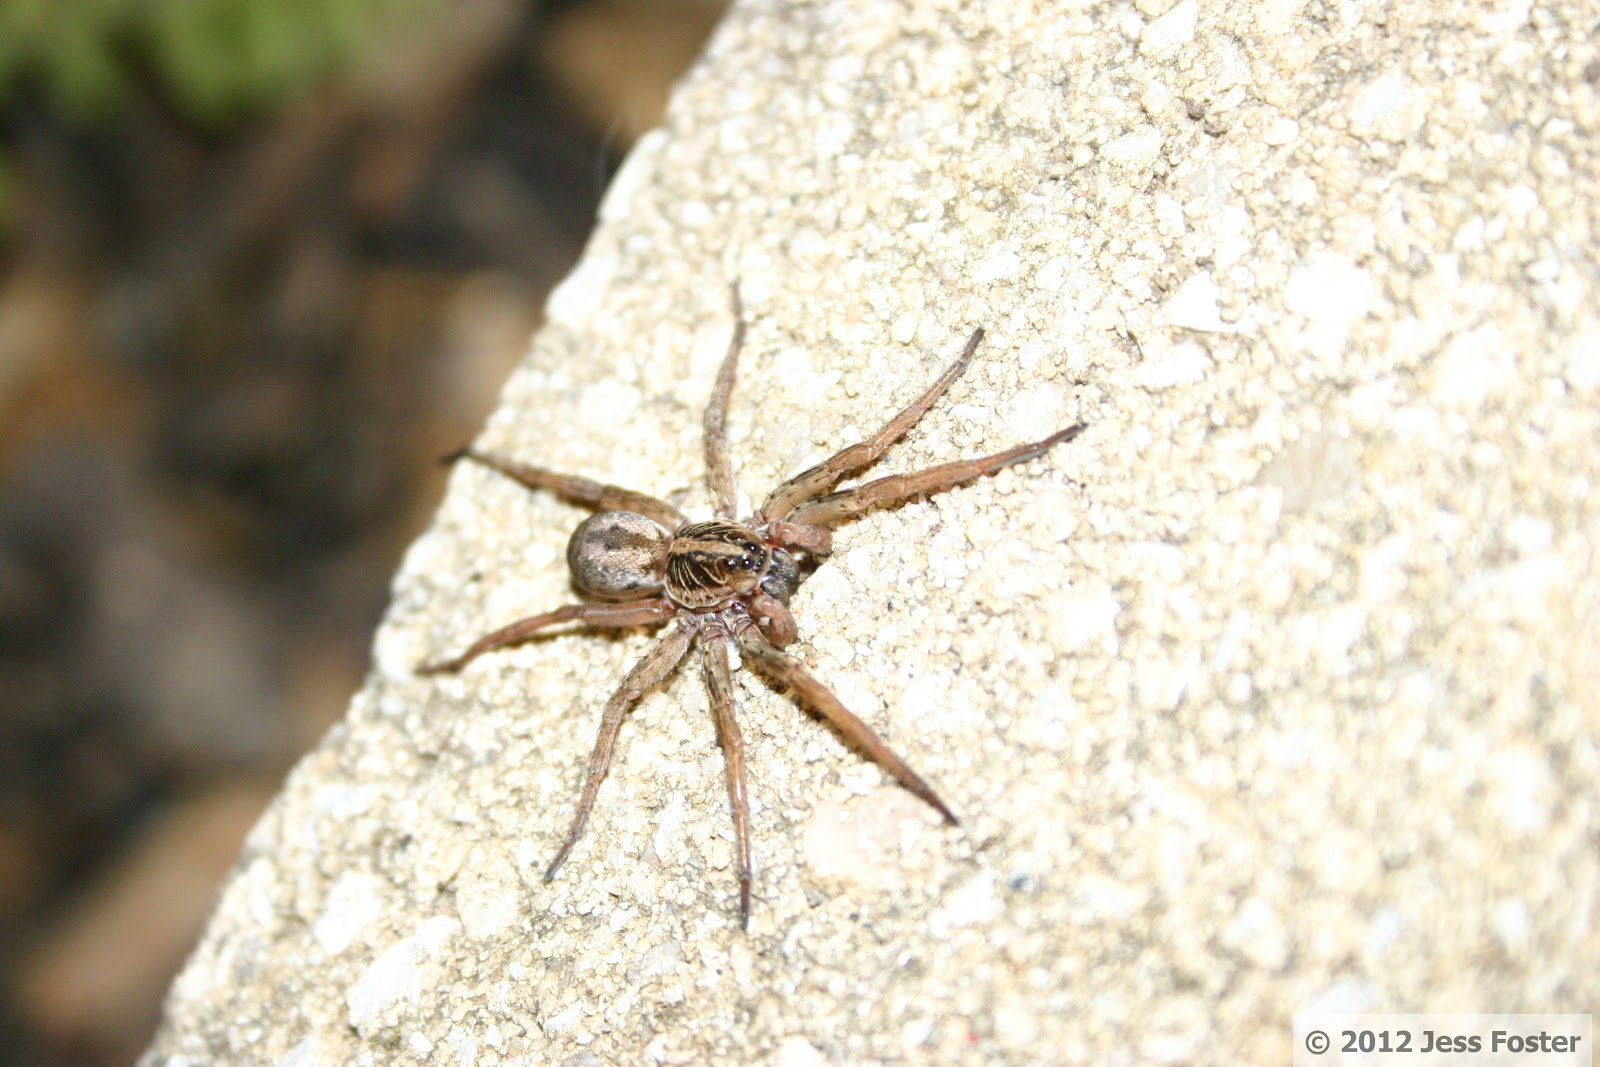 and the flash on my camera a wolf spider s eyes reflect light well